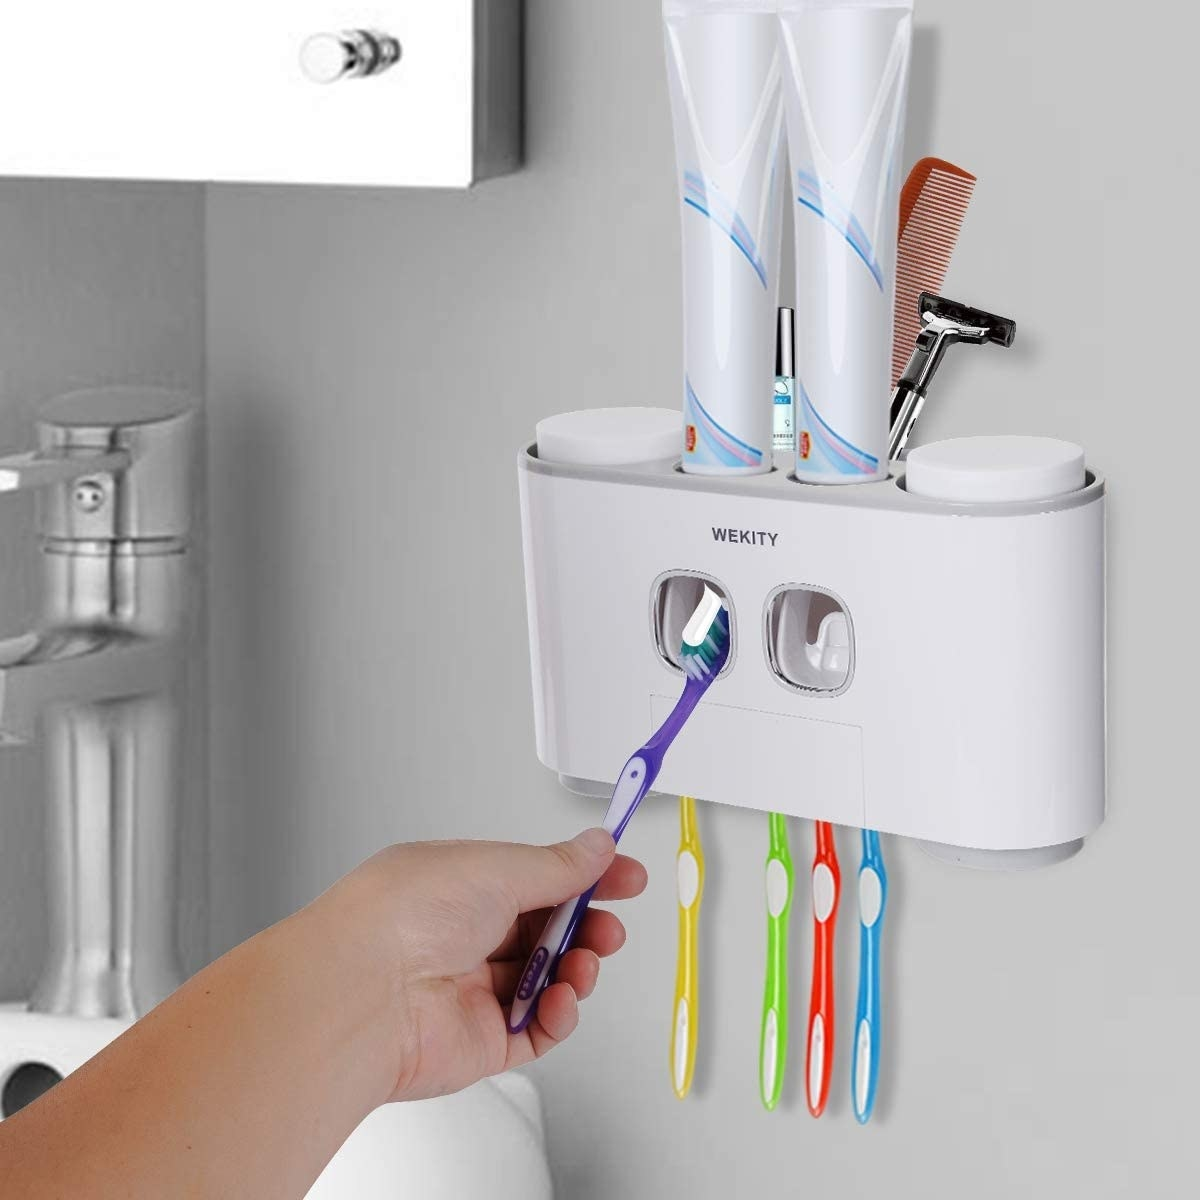 Model holding toothbrush up to automatic toothpaste dispenser